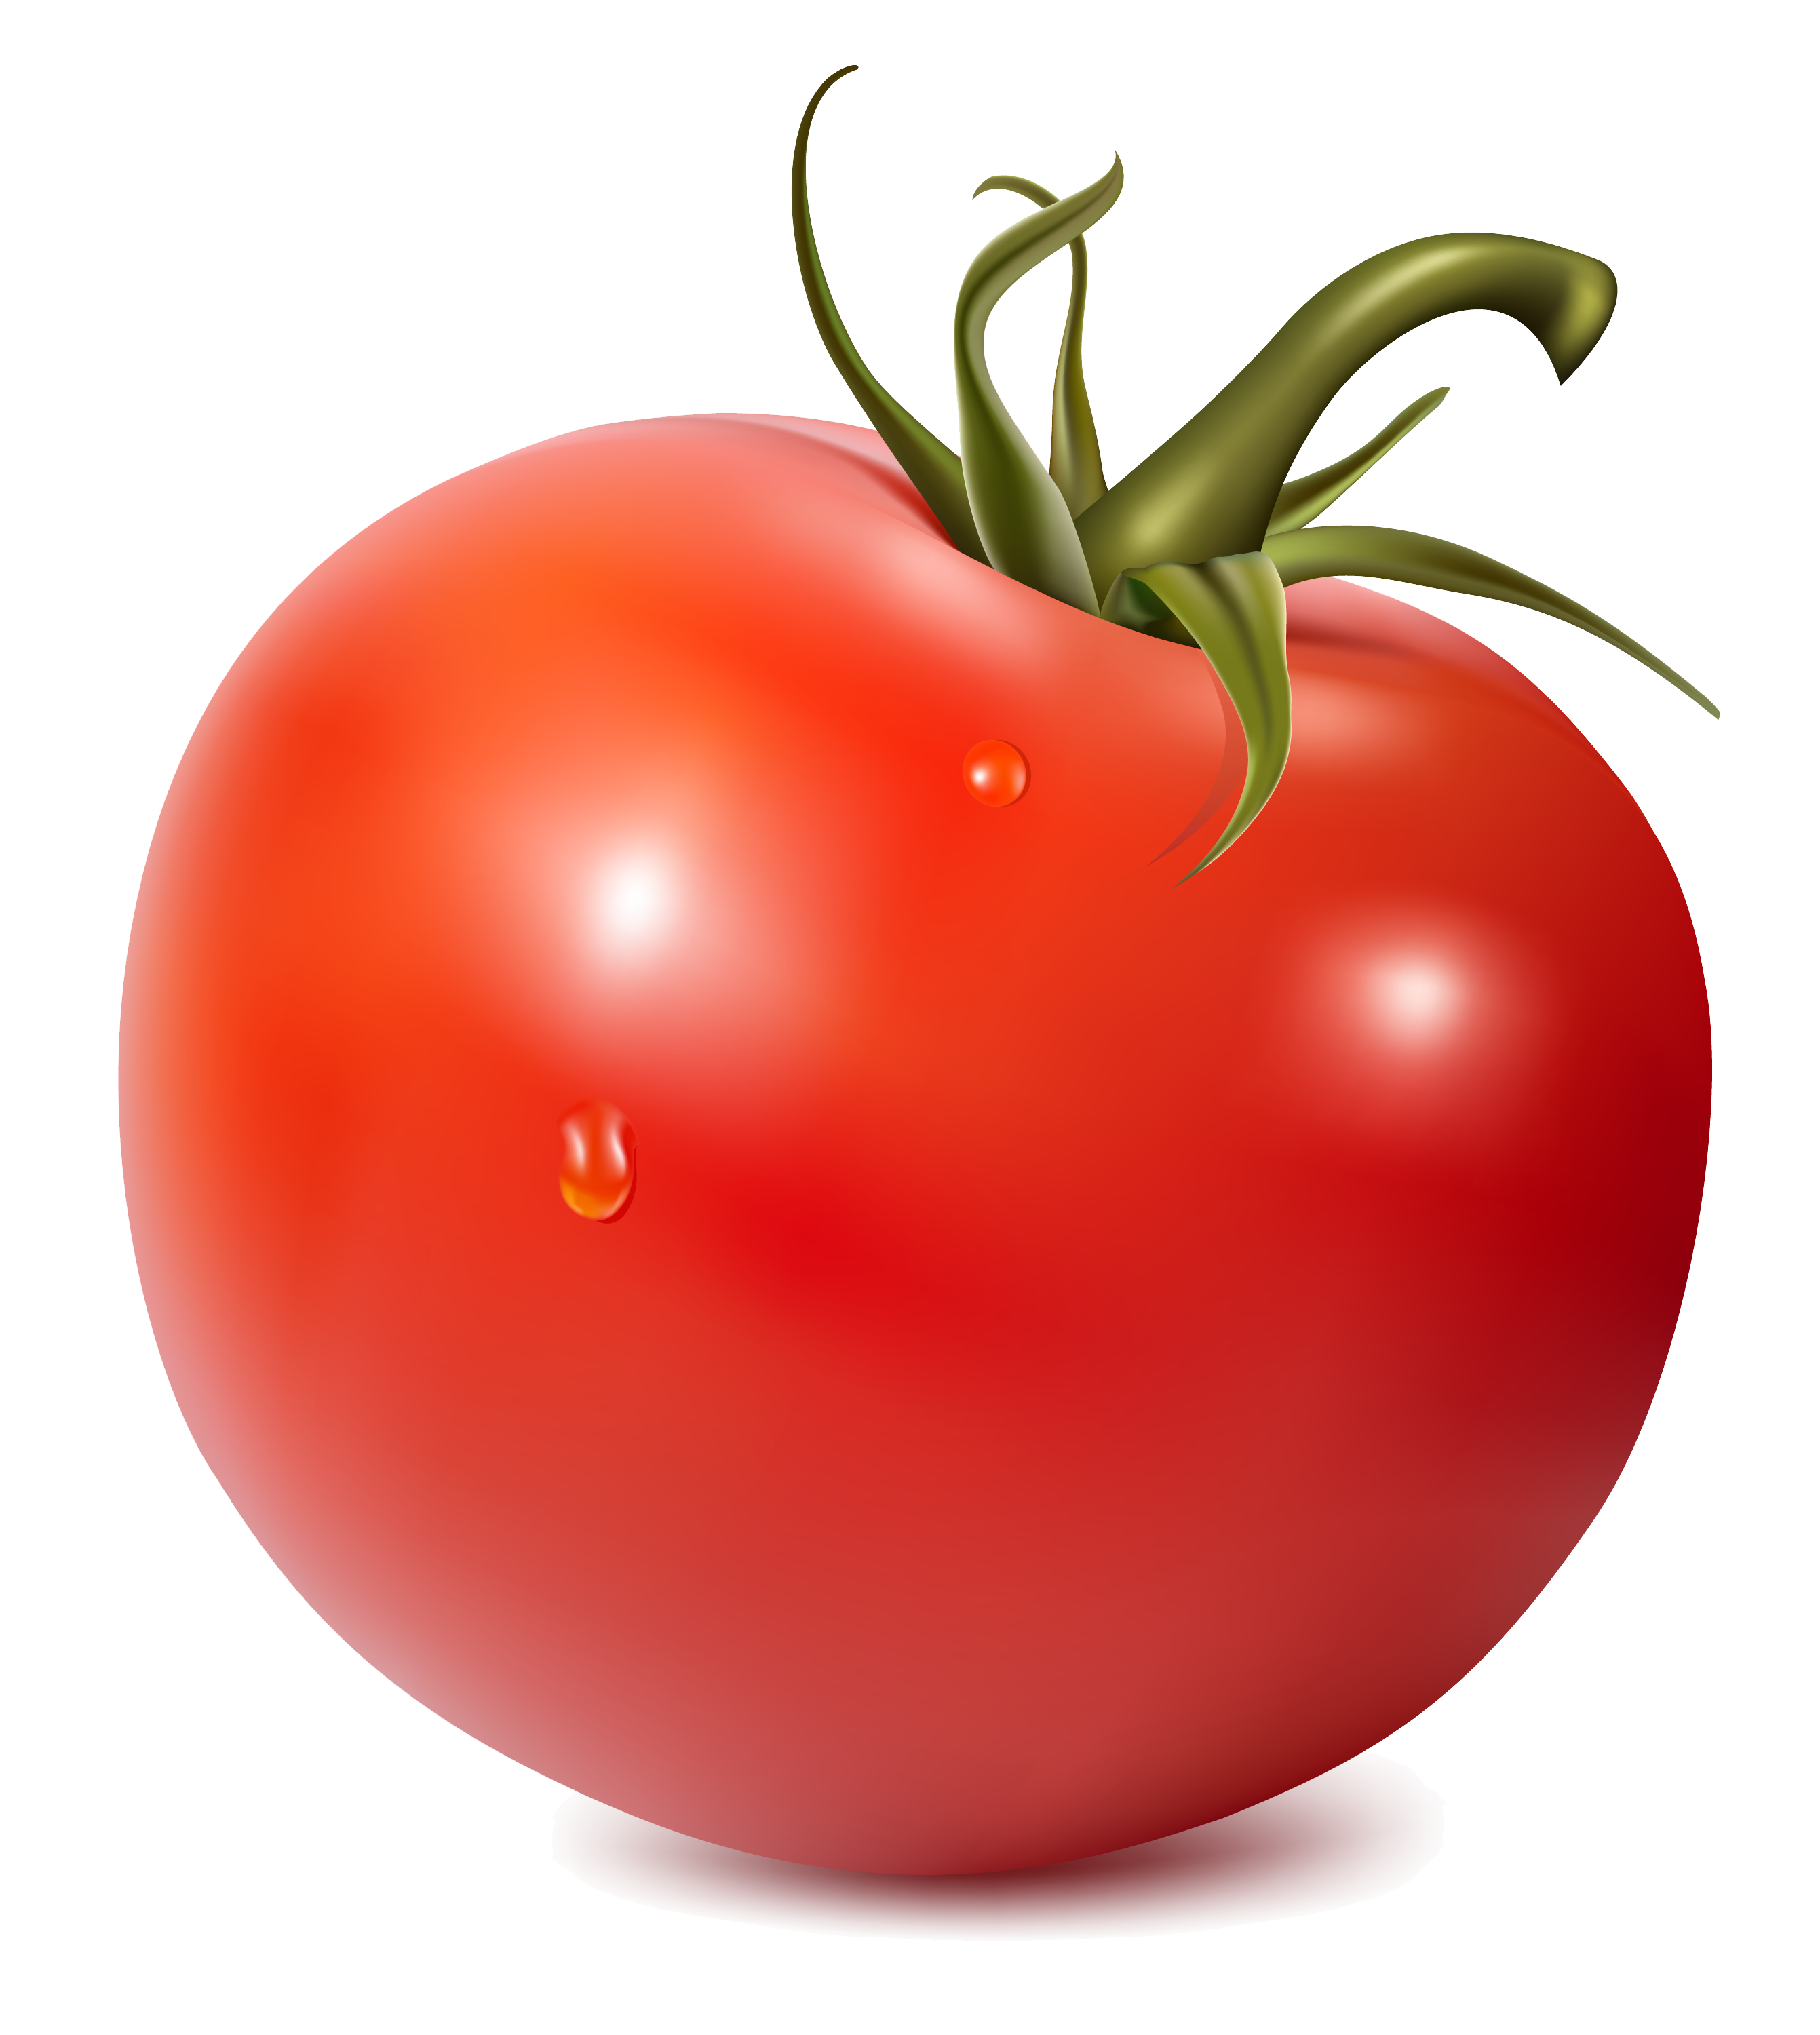 Tomato transparent background frames. Tomatoes clipart local